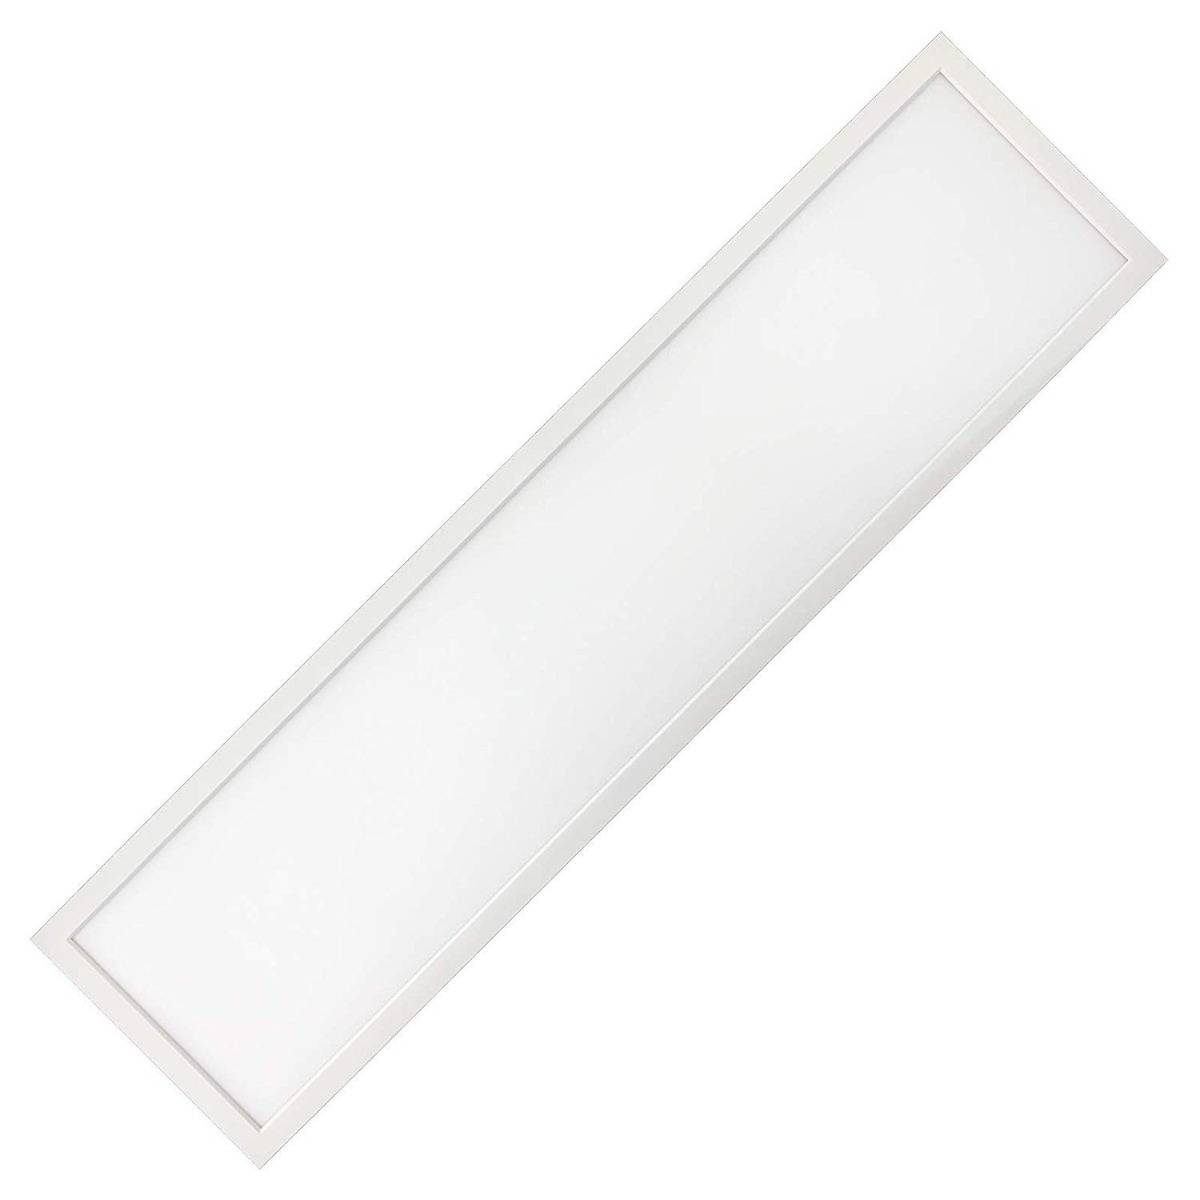 Simple Lighting 36w LED Panel, 1200x300mm Cool, Warm & Natural White